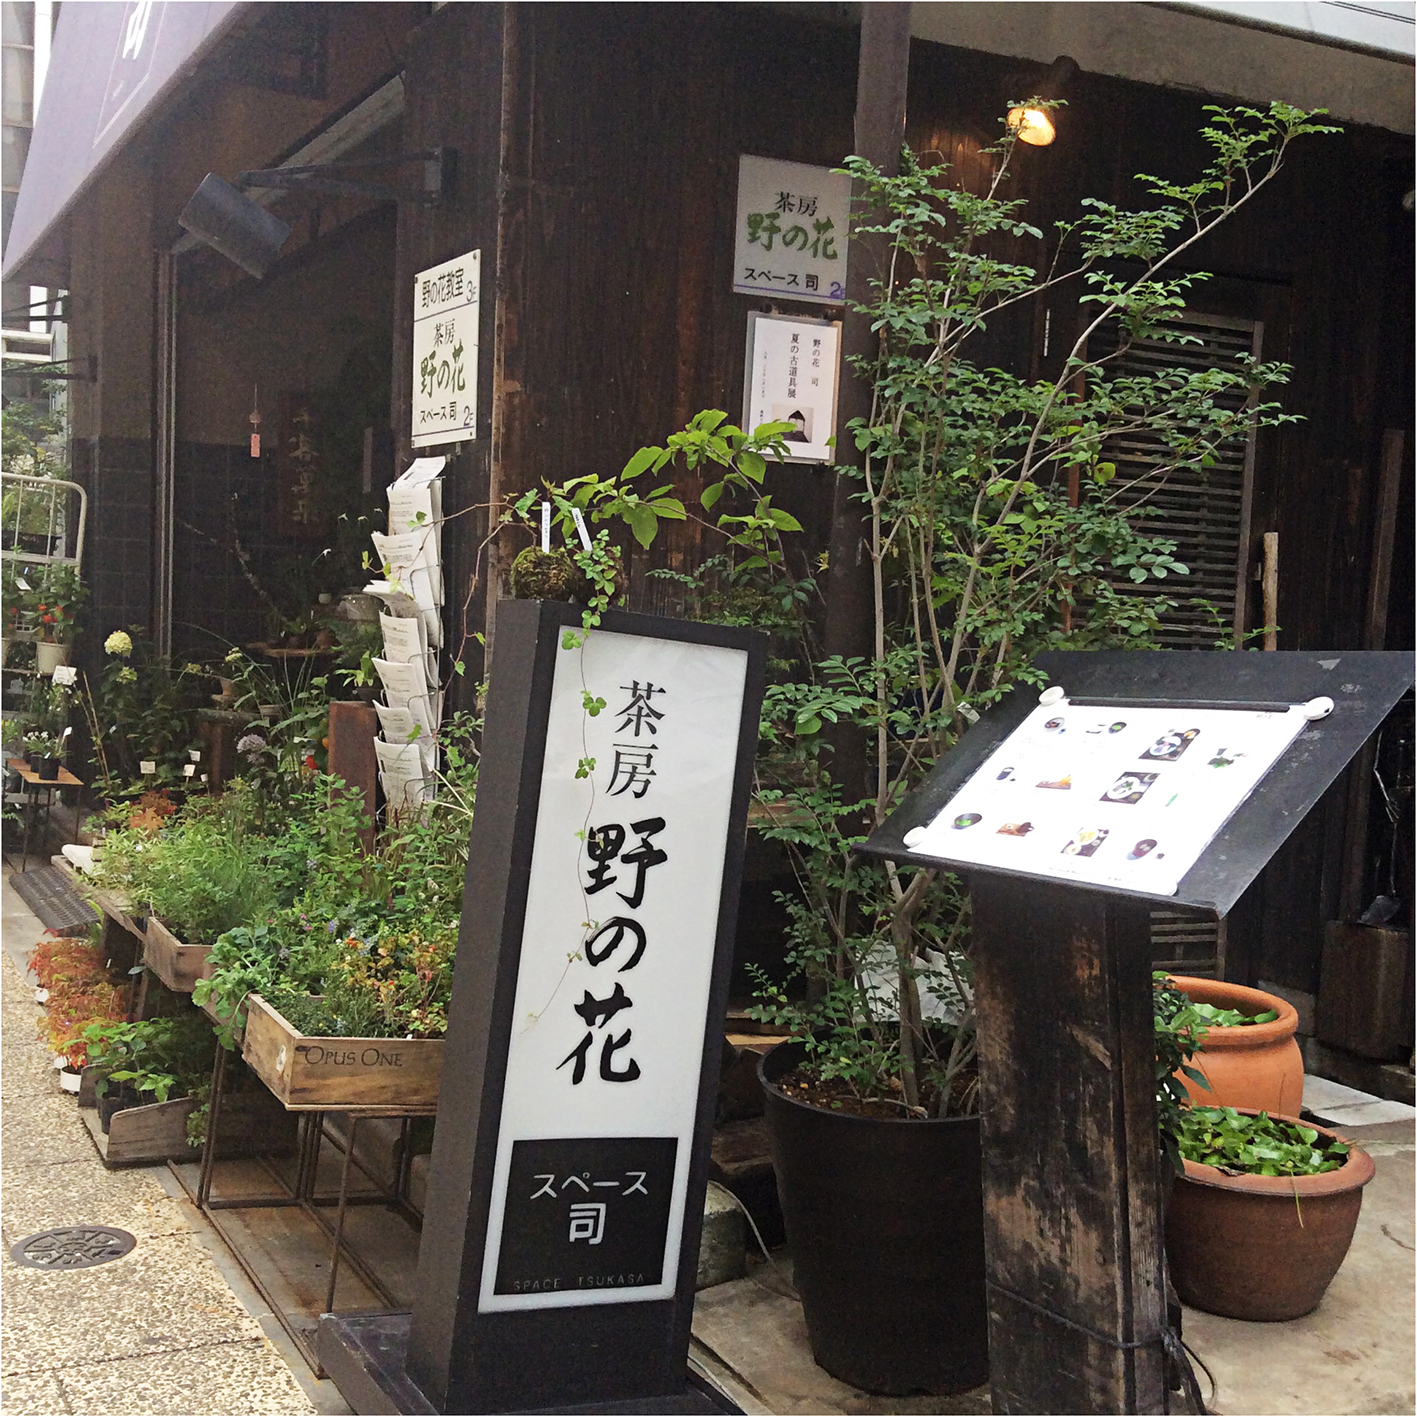 looking at a tiny wildflower shop from a small sidestreet in Ginza; small plants in wooden boxes, the shop name on a stand in black and white an various information leaflets on display.